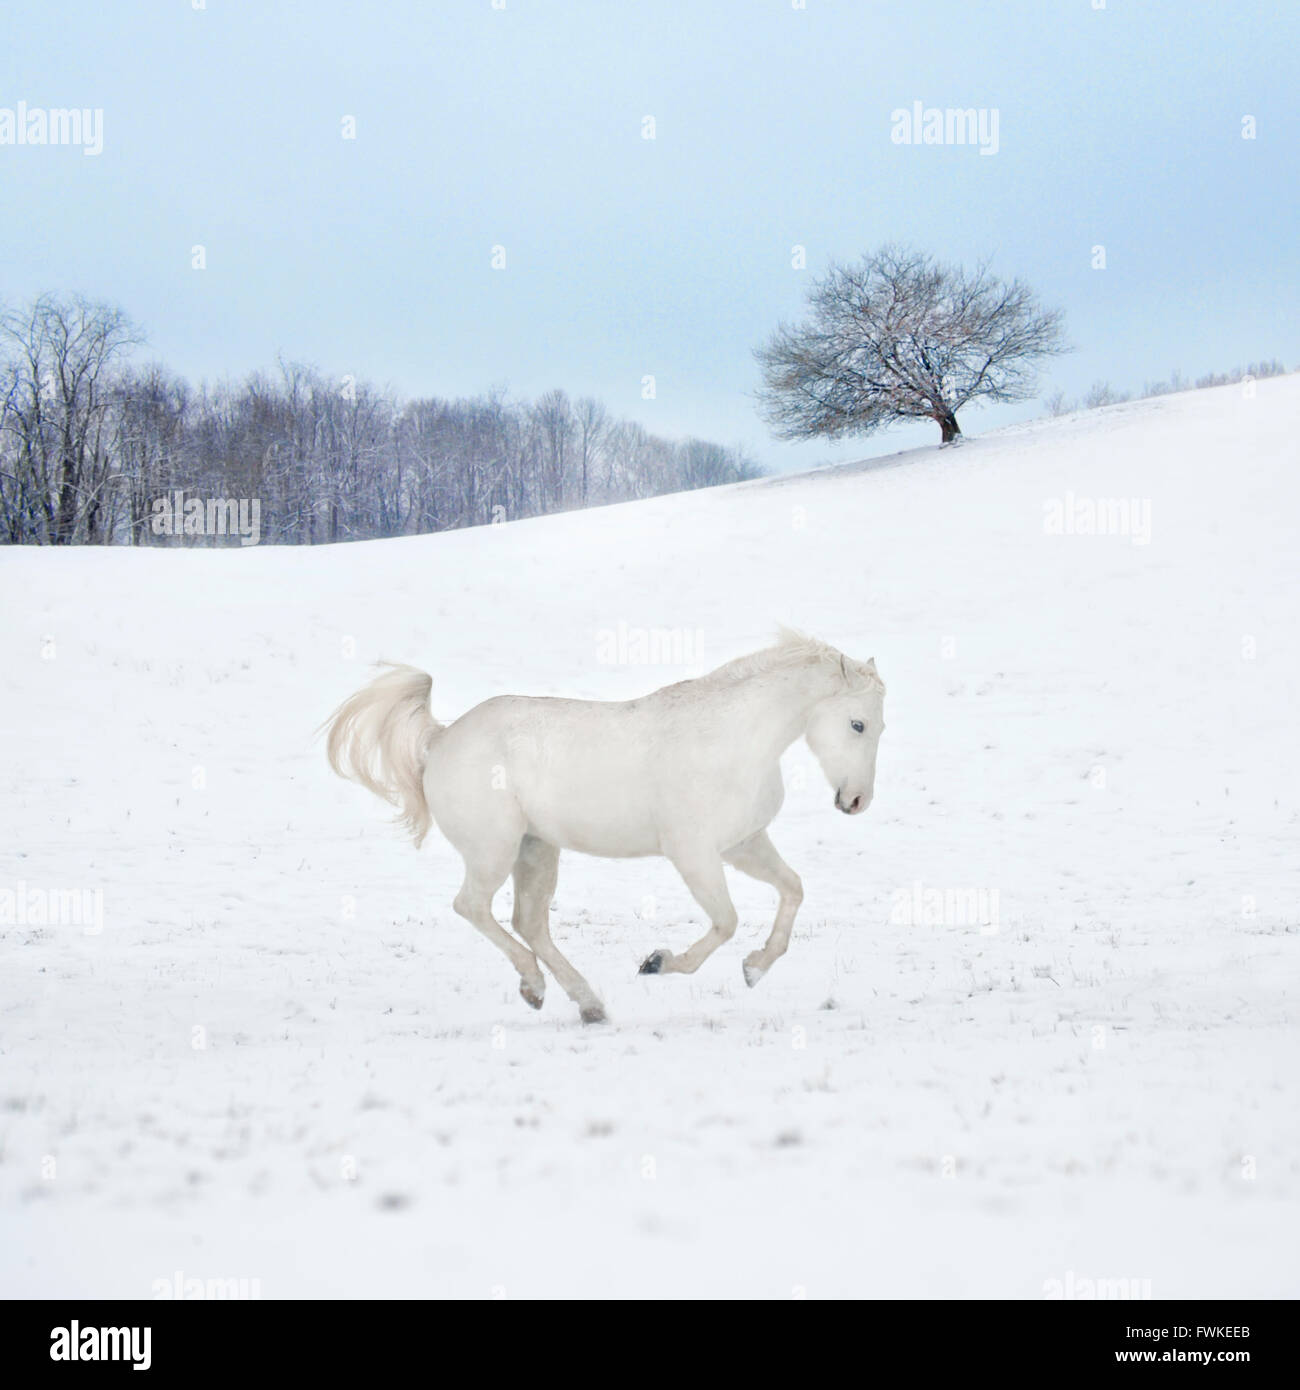 Appaloosa gelding running across snow covered pasture - Stock Image